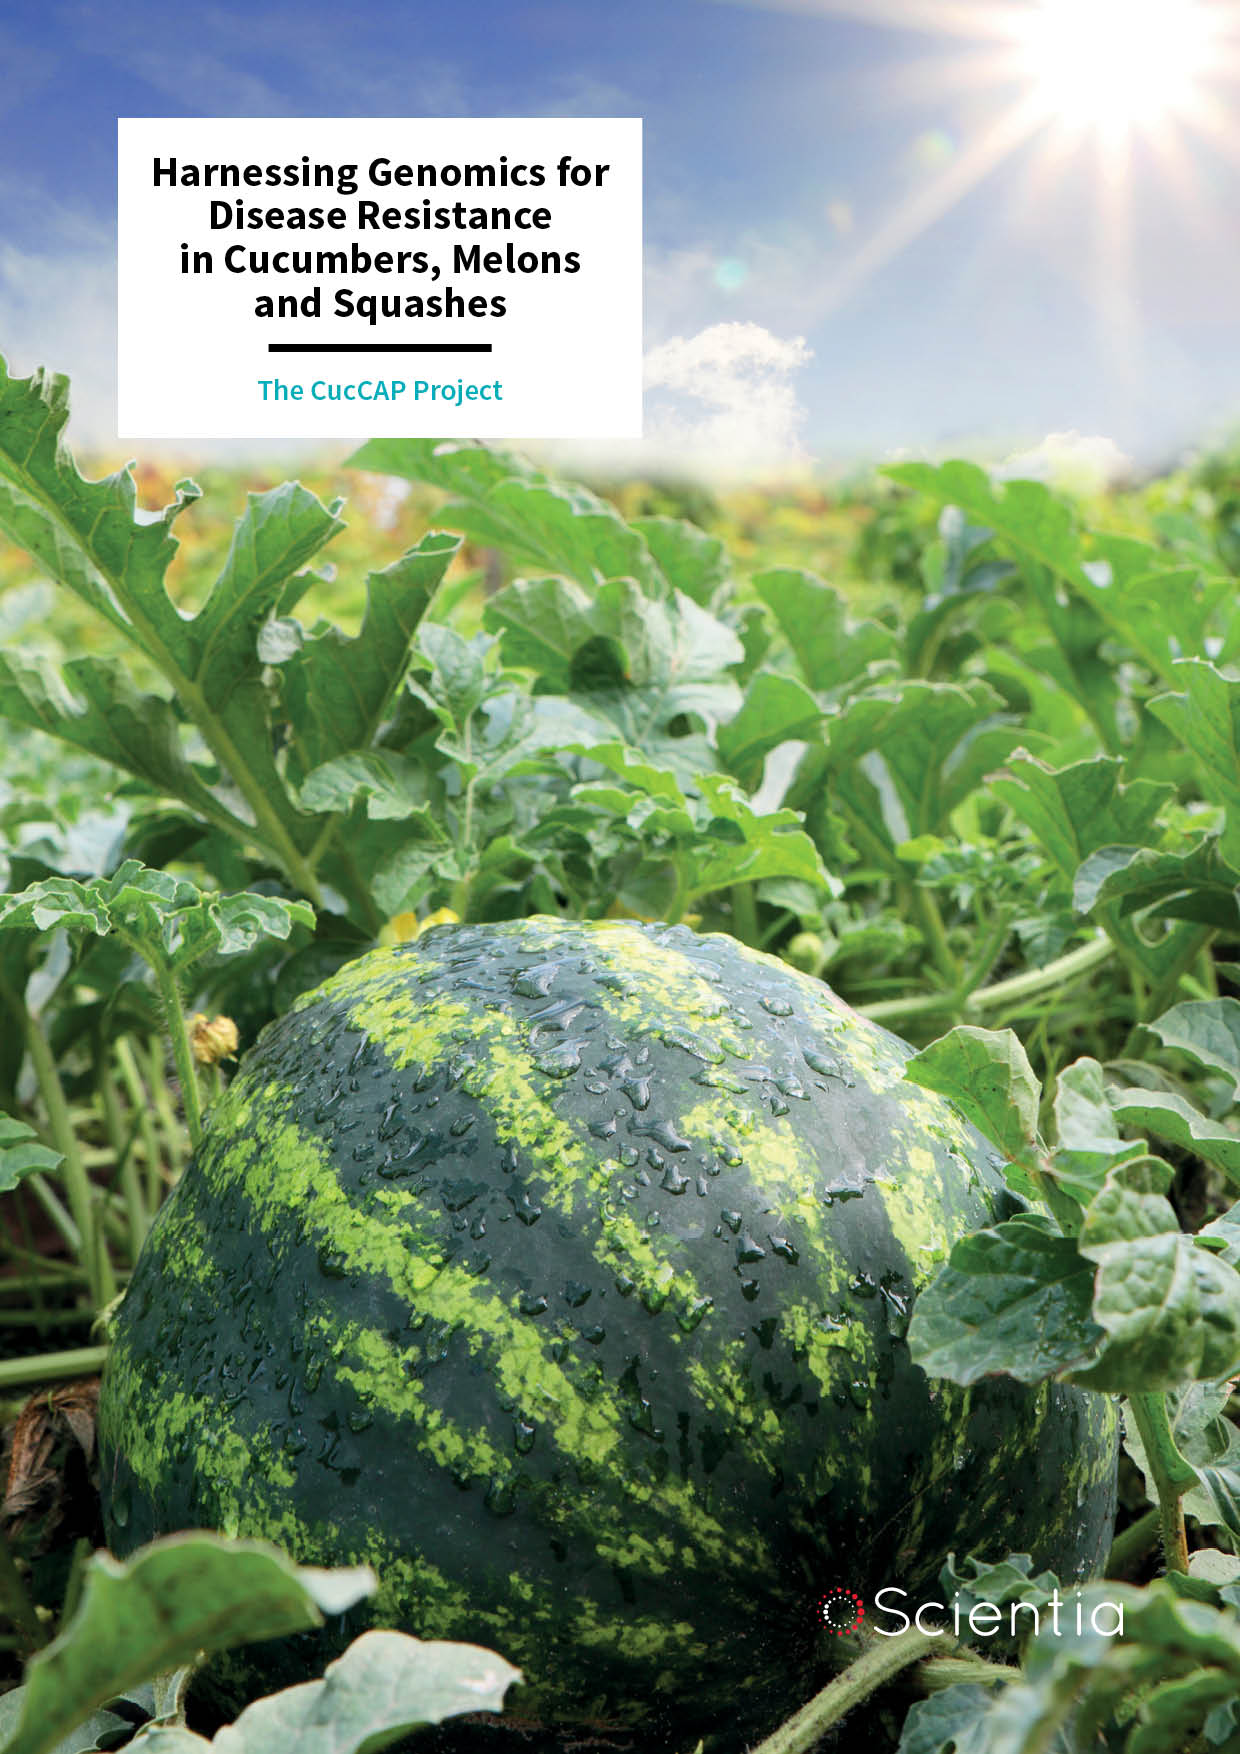 The CucCAP Project – Harnessing Genomics for Disease Resistance in Cucumbers, Melons and Squashes